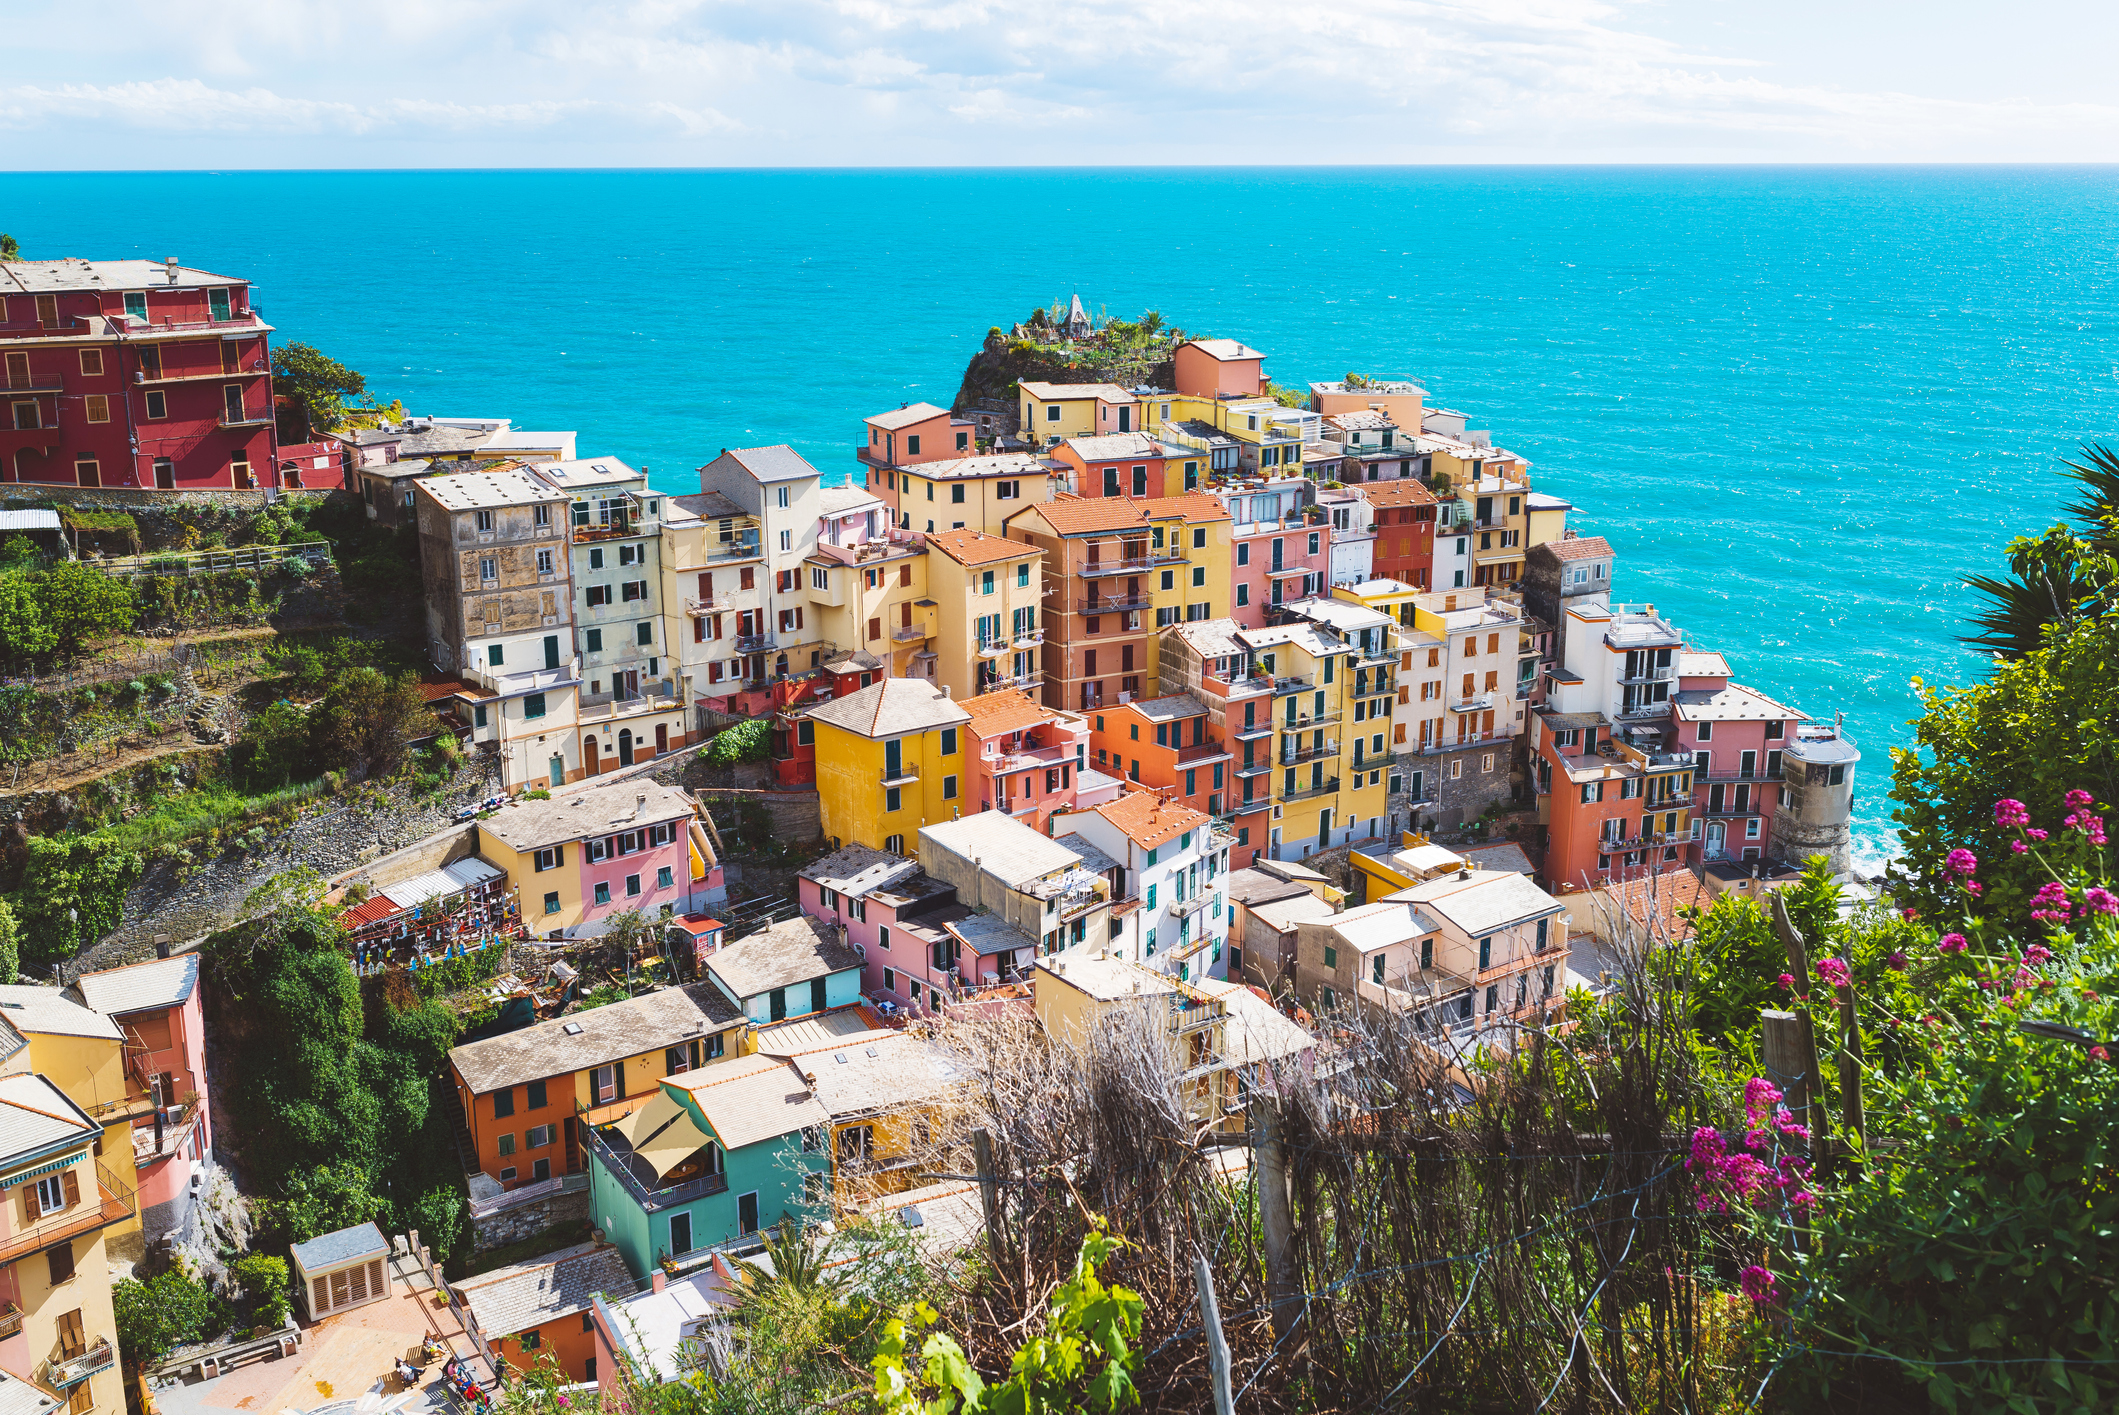 holiday, fabulous, landscape, location, city, beach, food, travelsupermarket, place, europe, Italy, view, mountain, nature, water, flower, building, river, color,